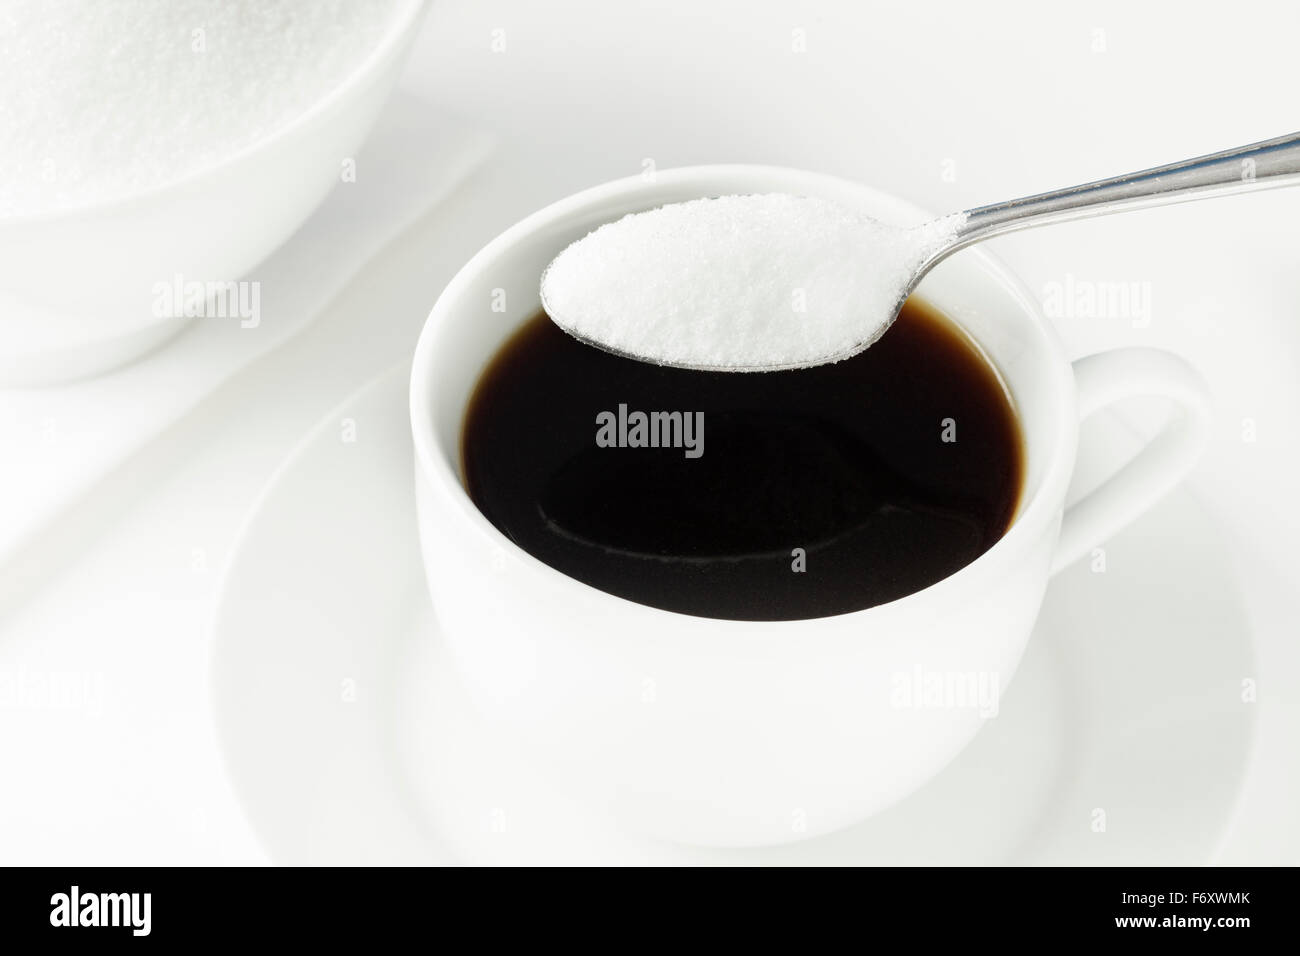 Cup of coffee with spoon full of sugar - Stock Image